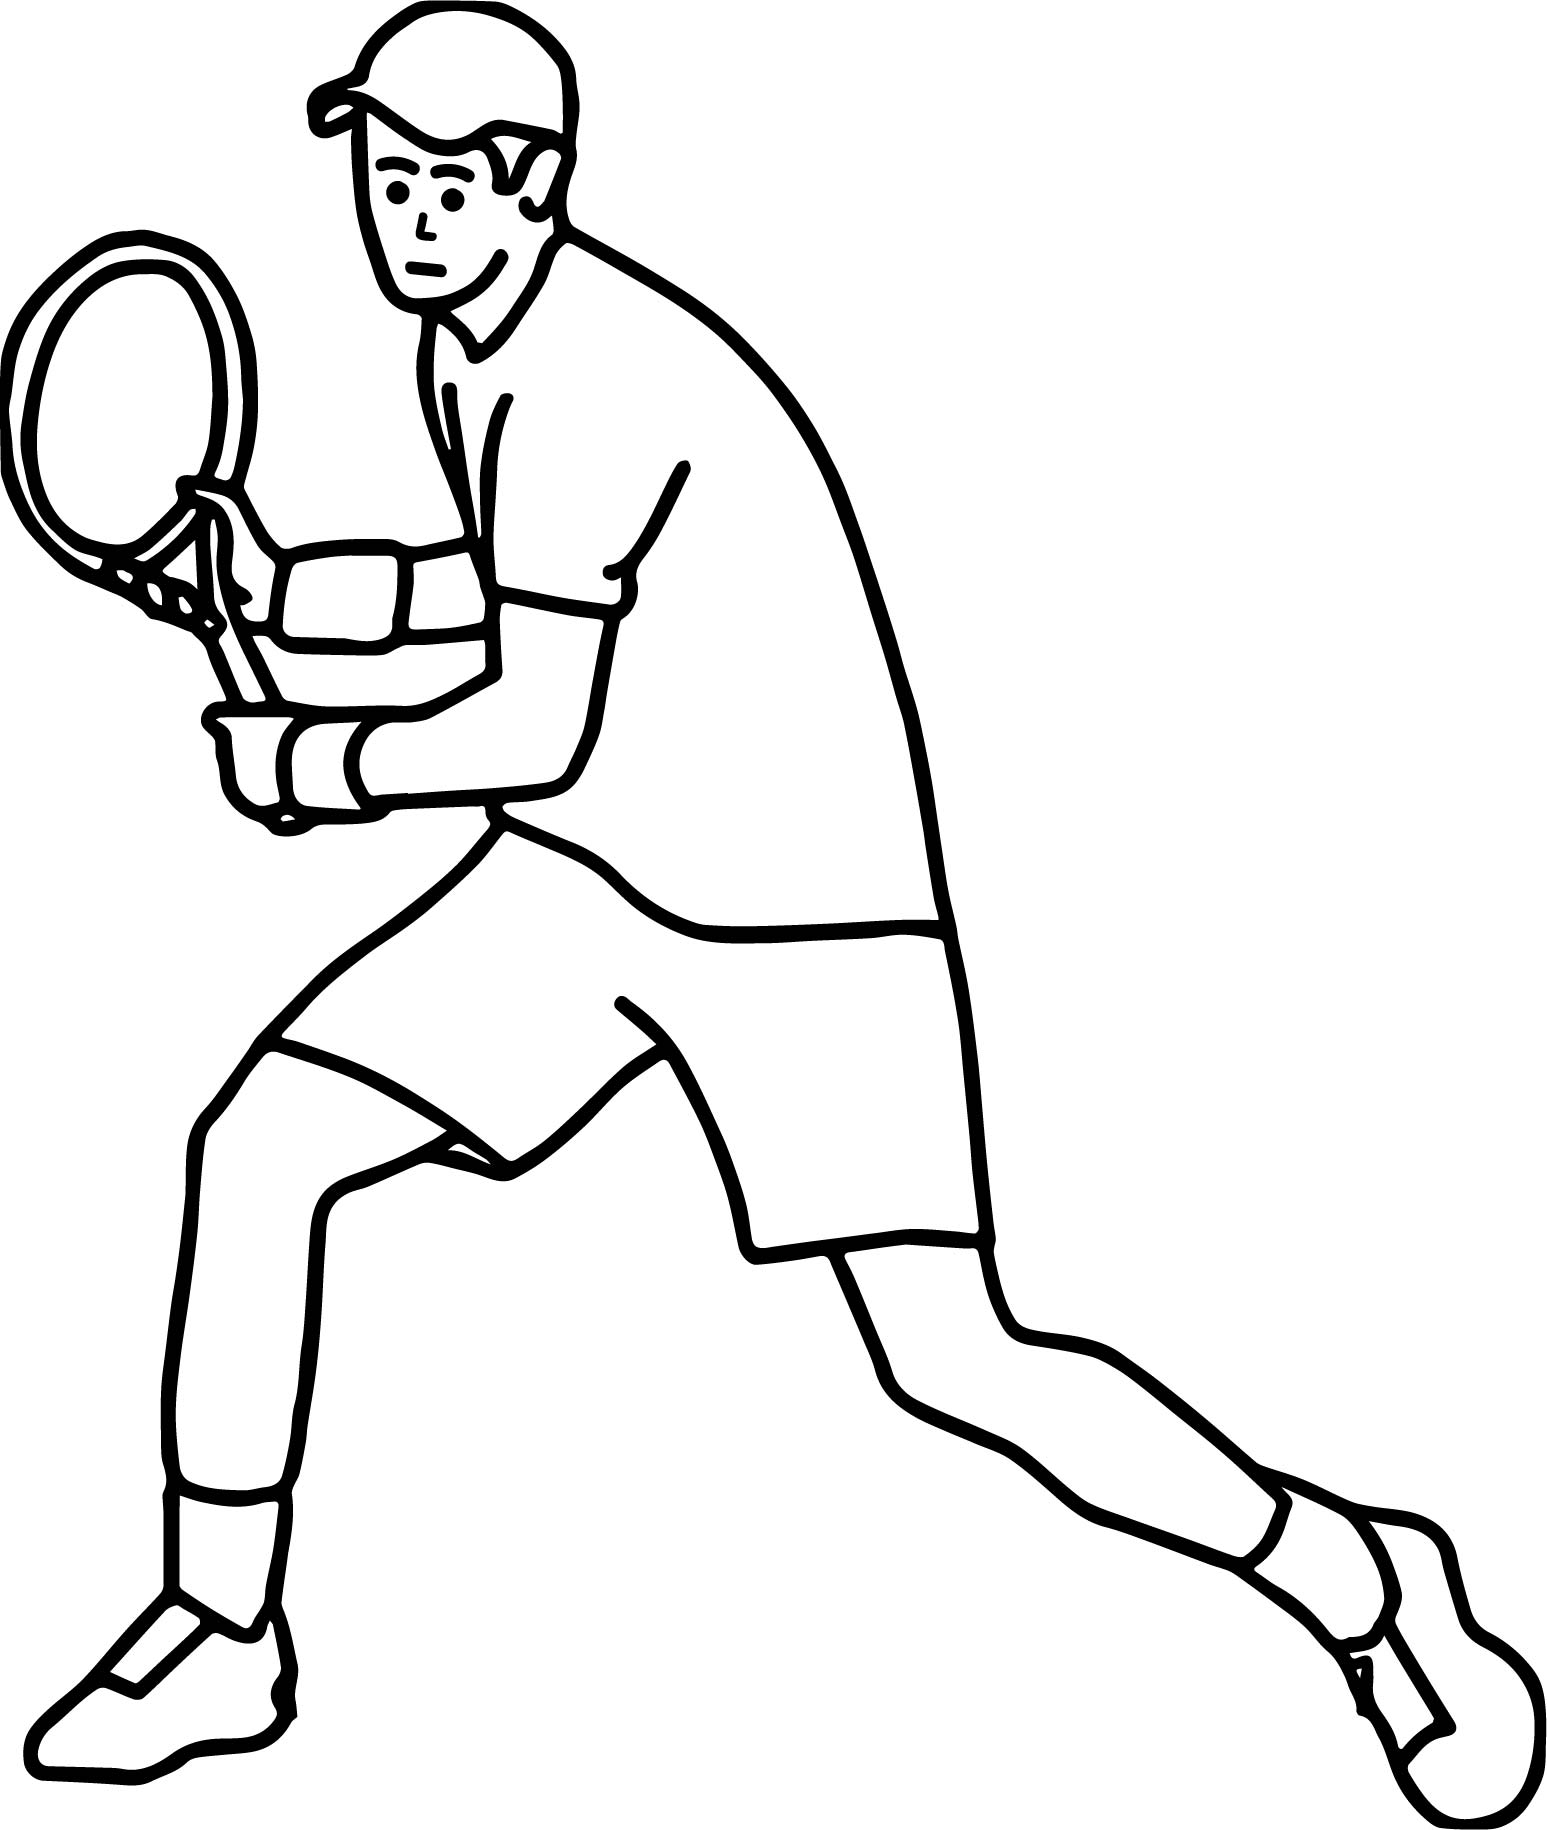 Tennis Player Backhand Stroke Coloring Page